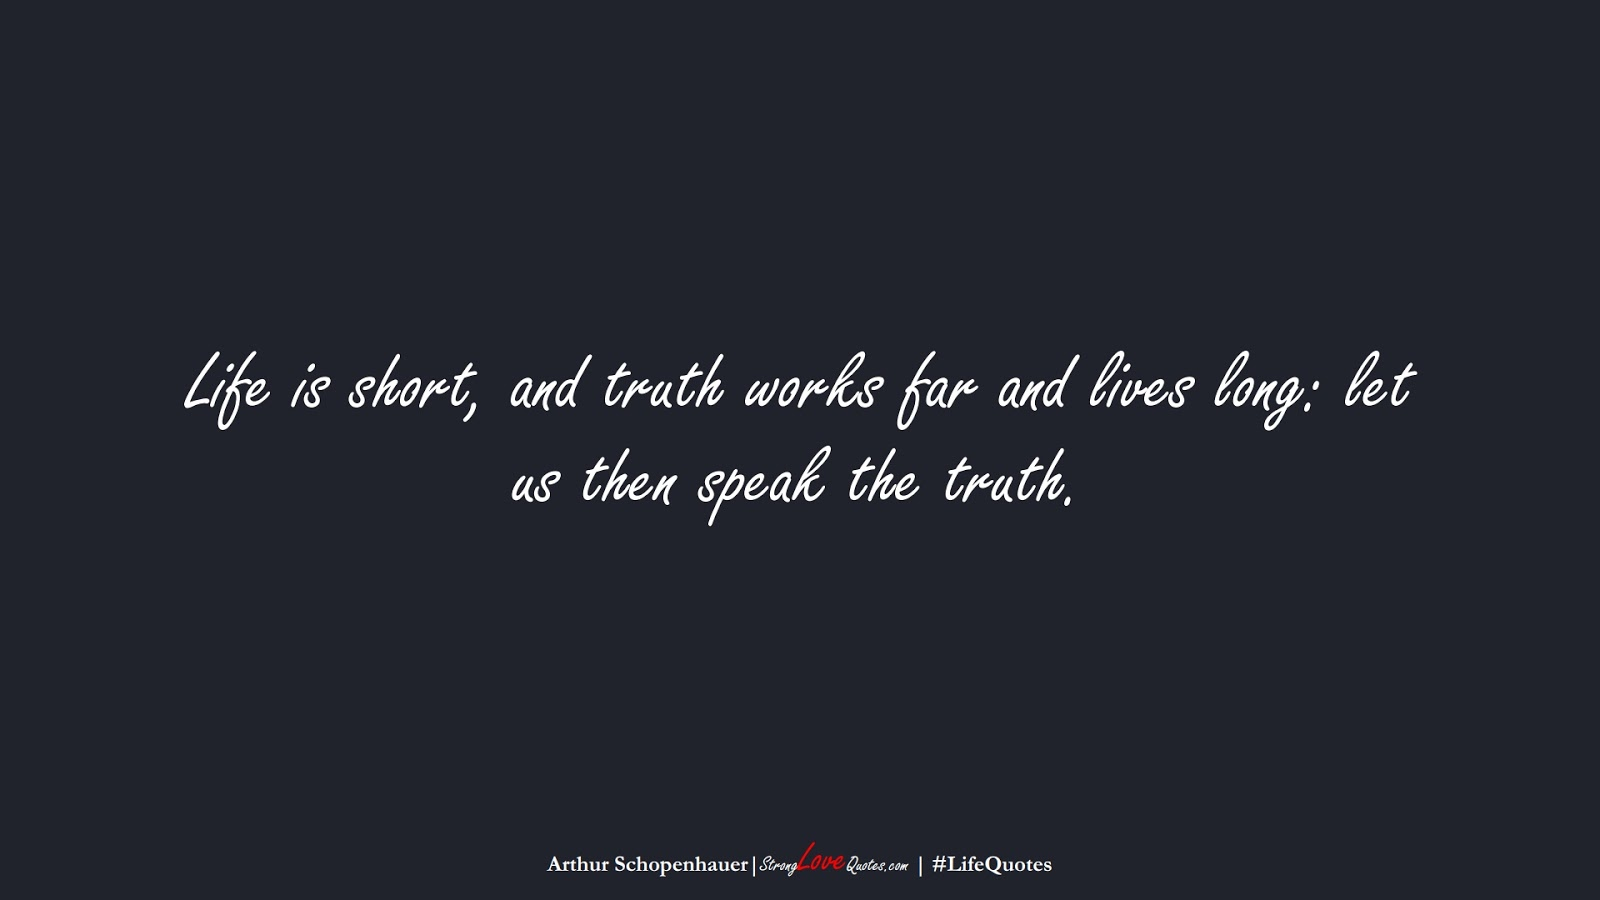 Life is short, and truth works far and lives long: let us then speak the truth. (Arthur Schopenhauer);  #LifeQuotes